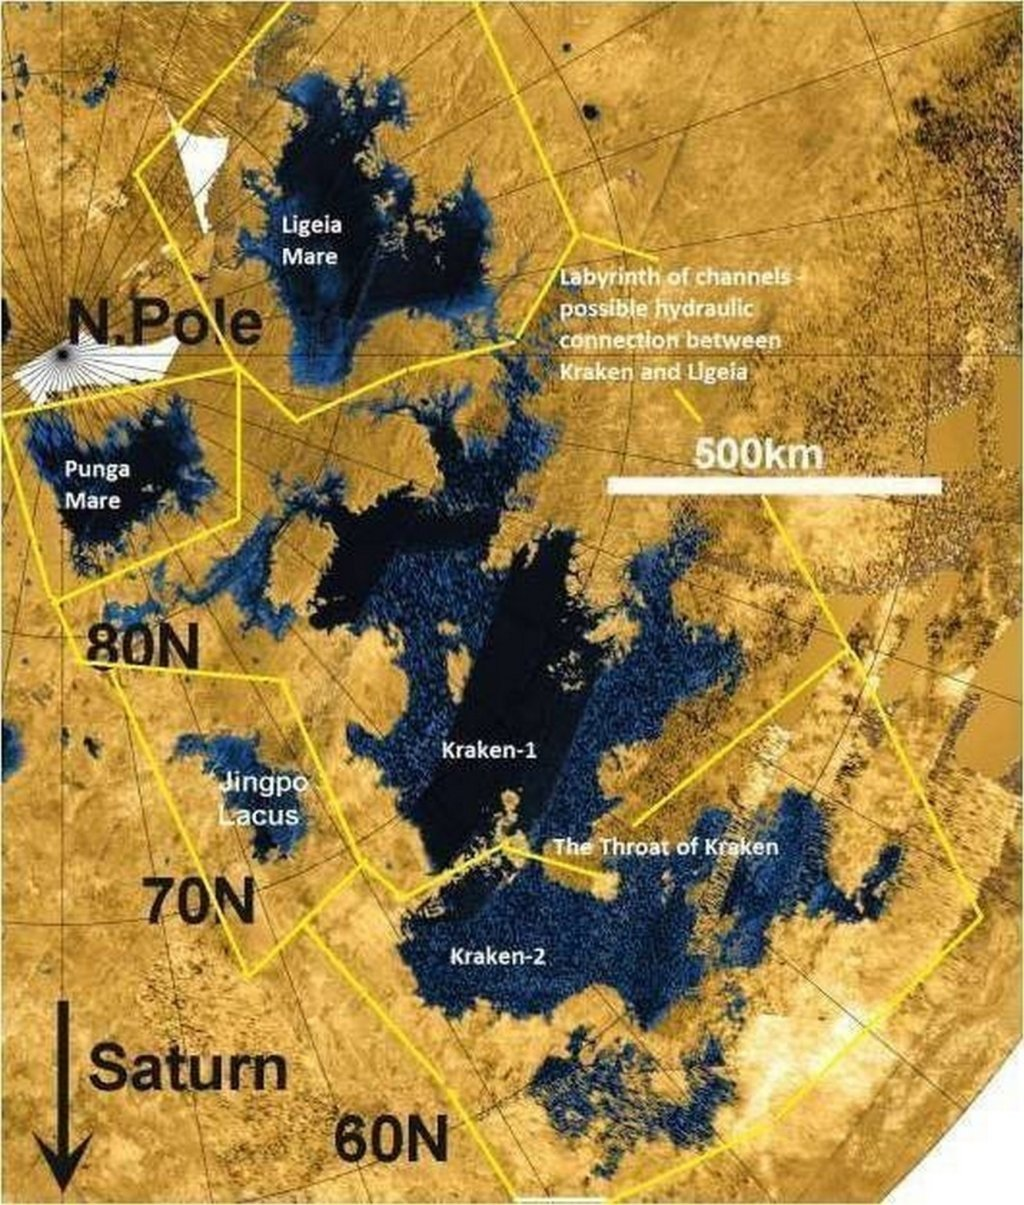 radar map of titan s seas 5cf1867c3102a65e38c0f22293ed3403f 22fda7e1306872df282d46574d2db0b71